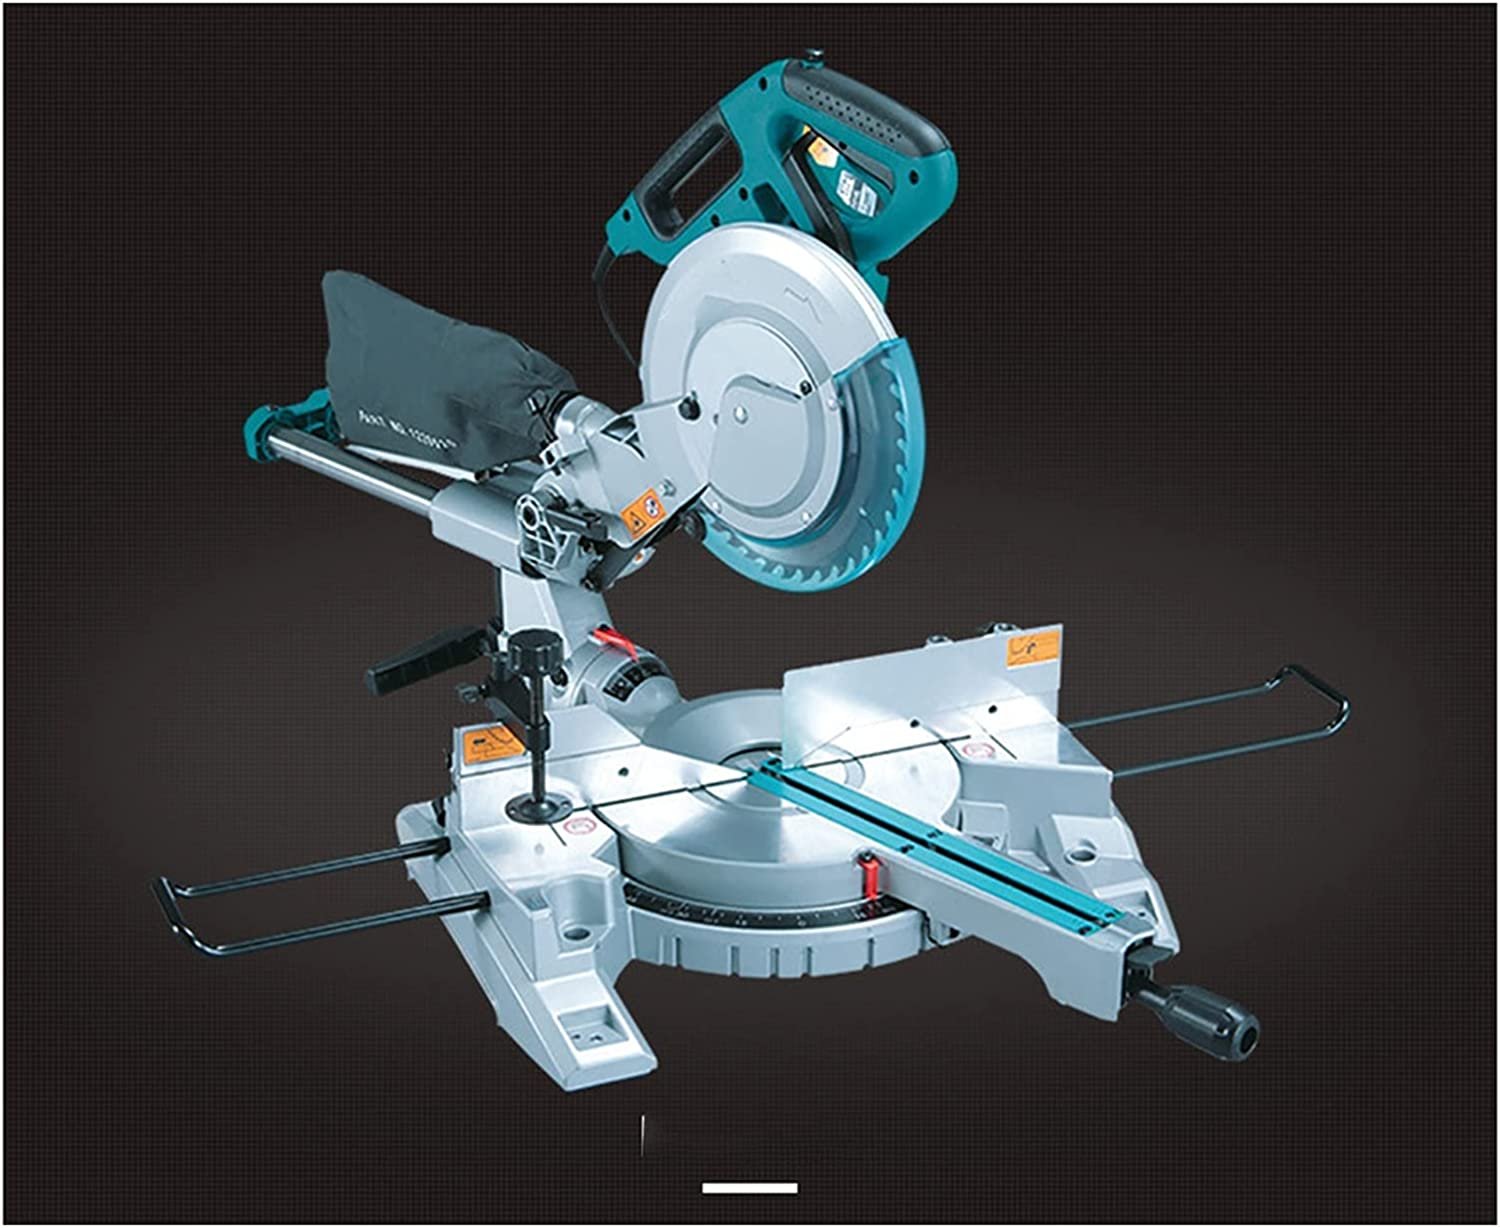 PSFYYY Miter Saw 70% OFF Outlet Multi-Function Aluminum Lowest price challenge Machine Wo